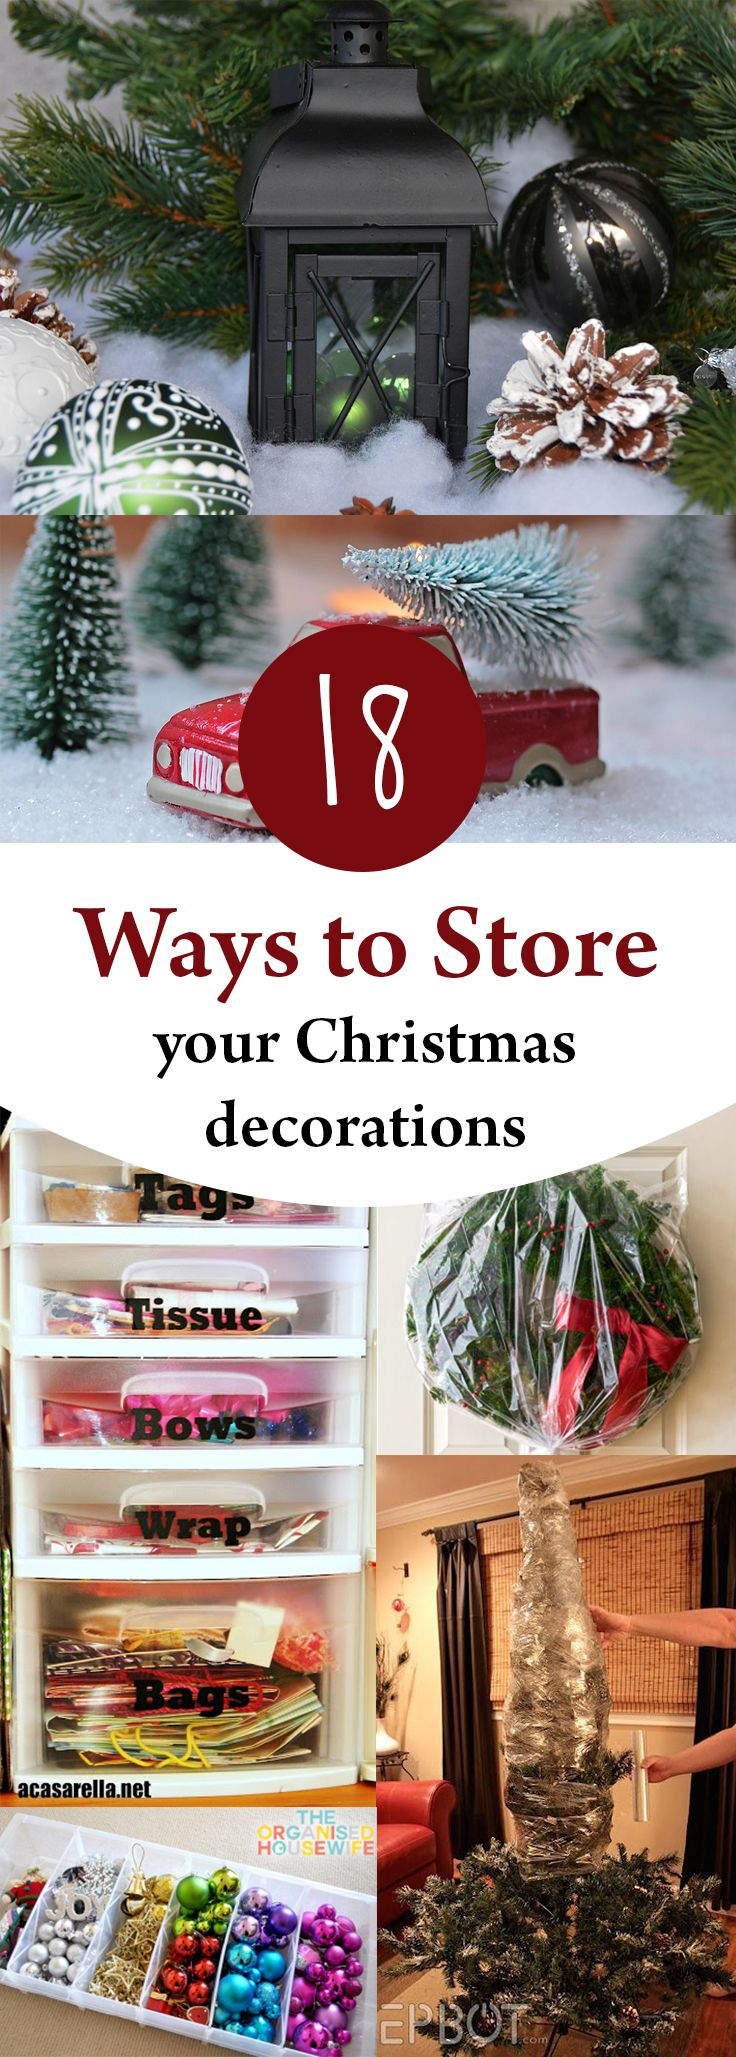 18 Ways To Store Your Christmas Decorations Christmas Storage Storing Christmas Decorations Holiday Storage